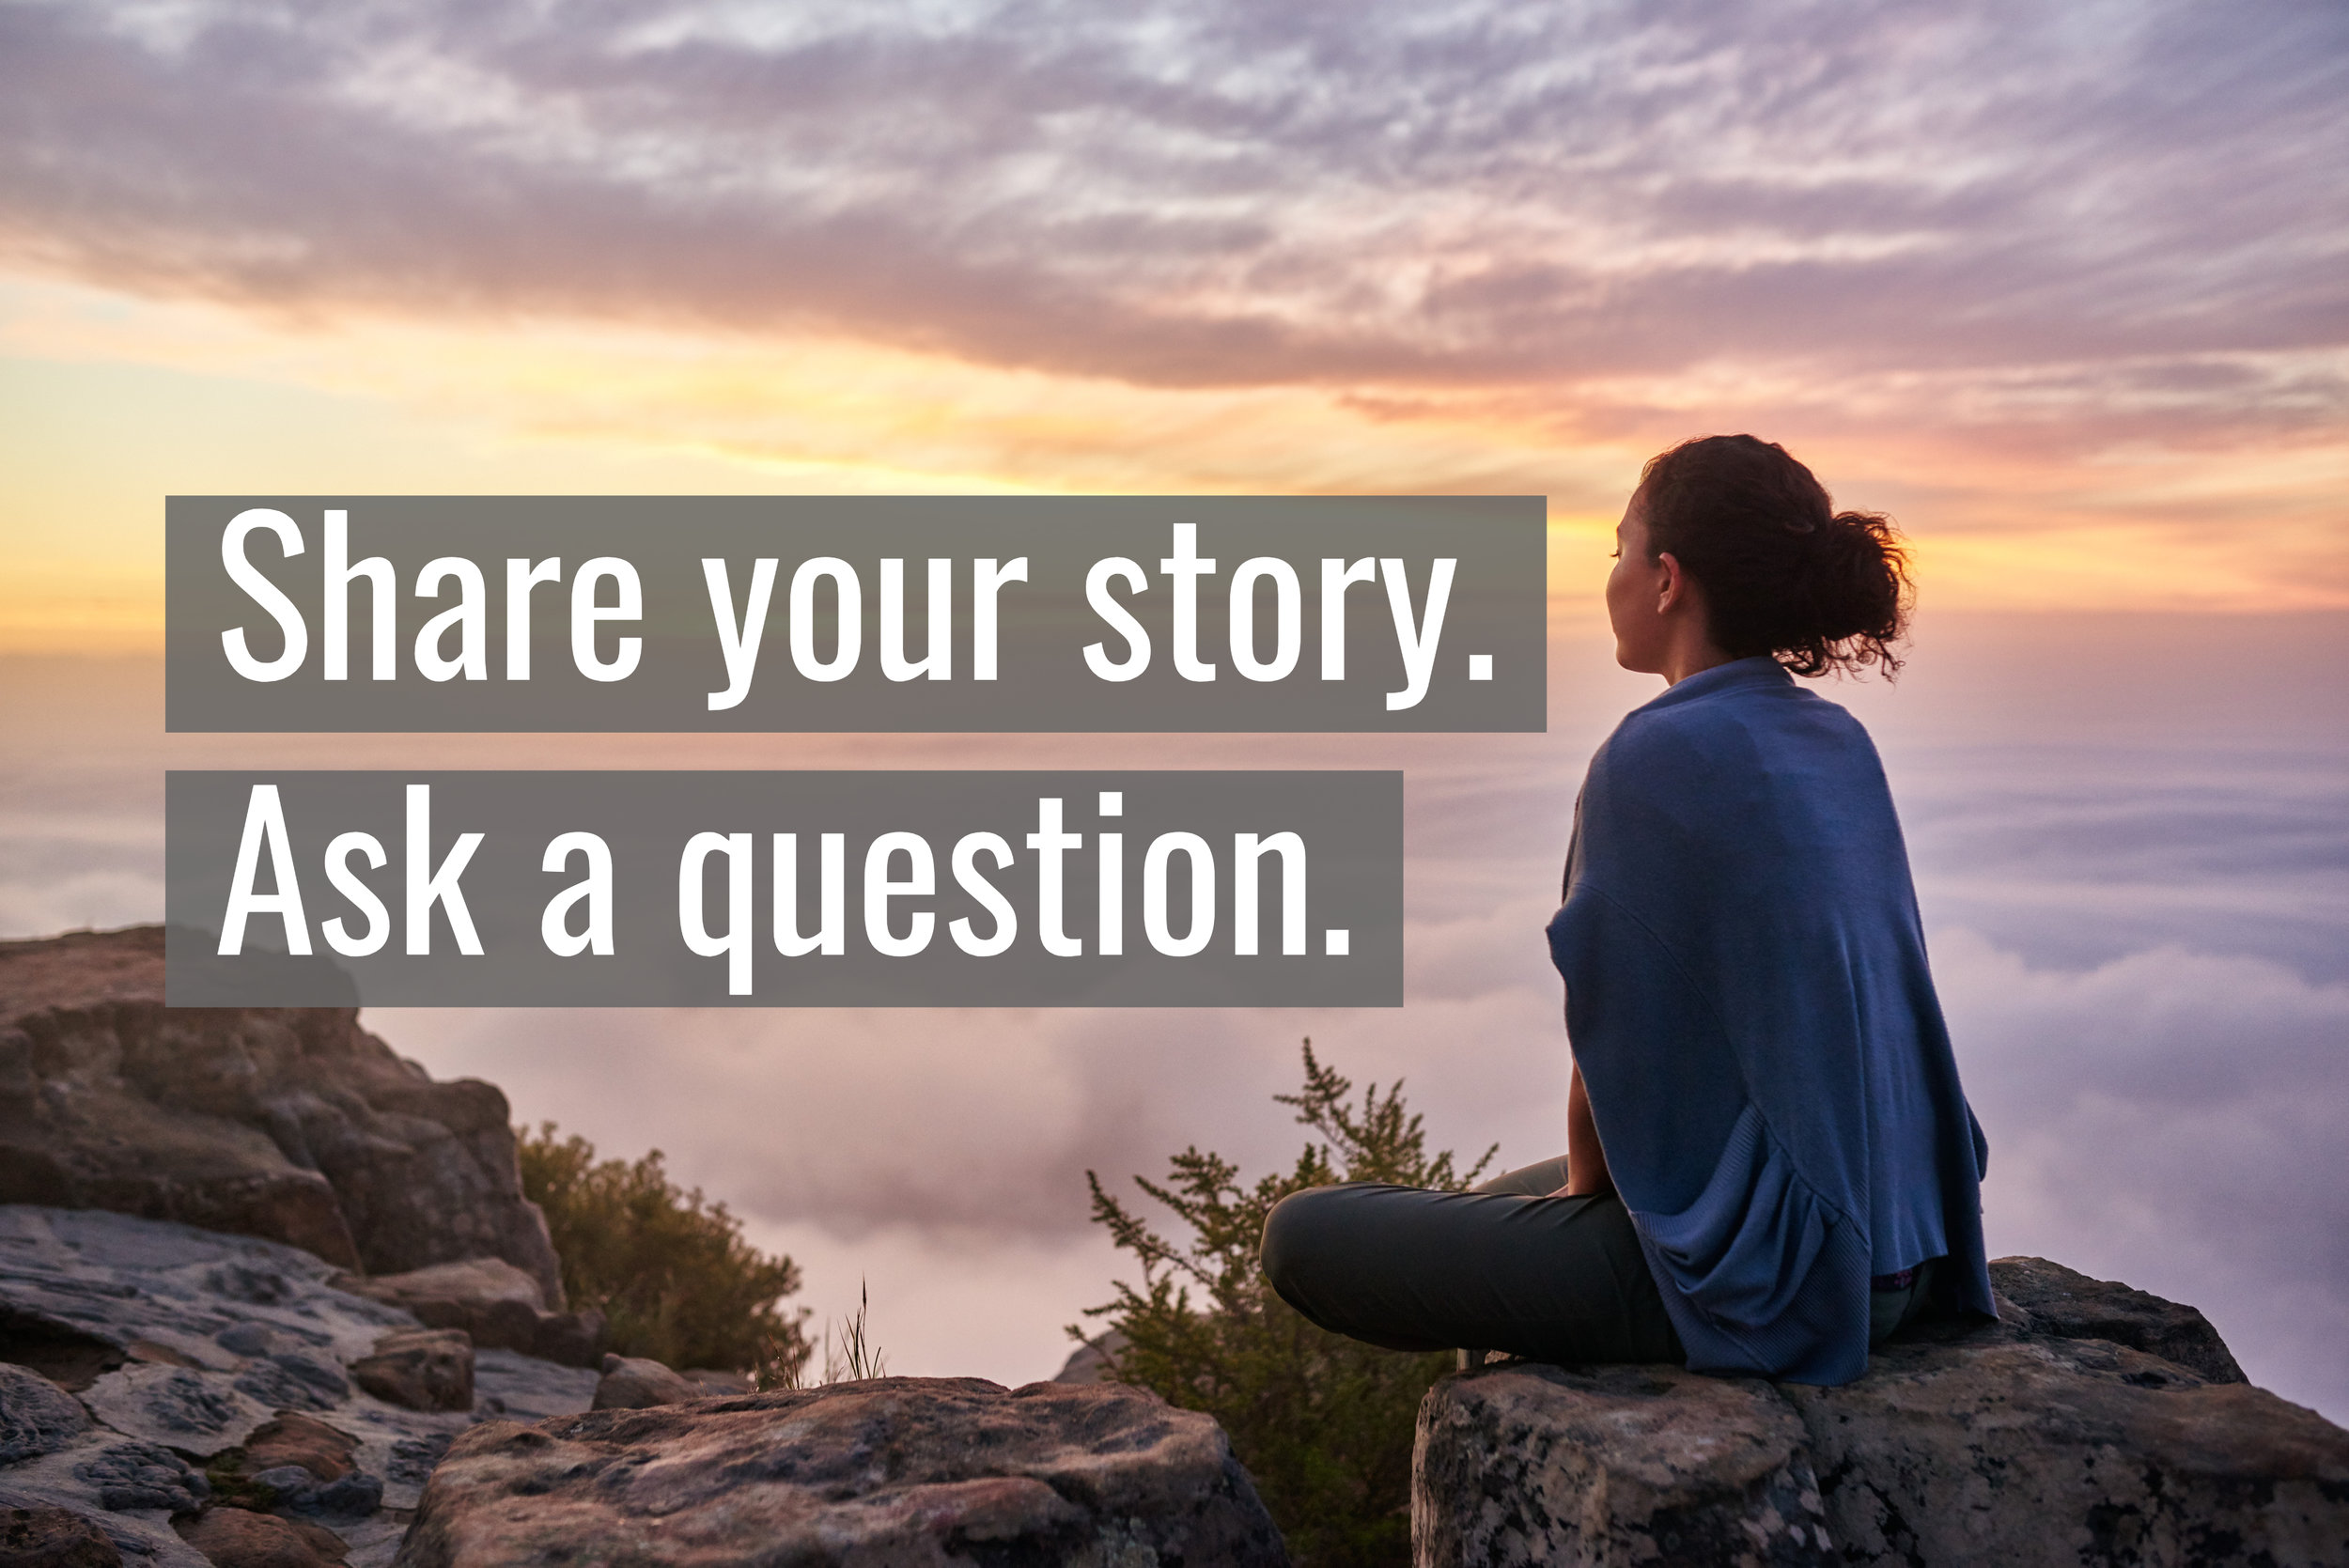 Your story and experience matter.